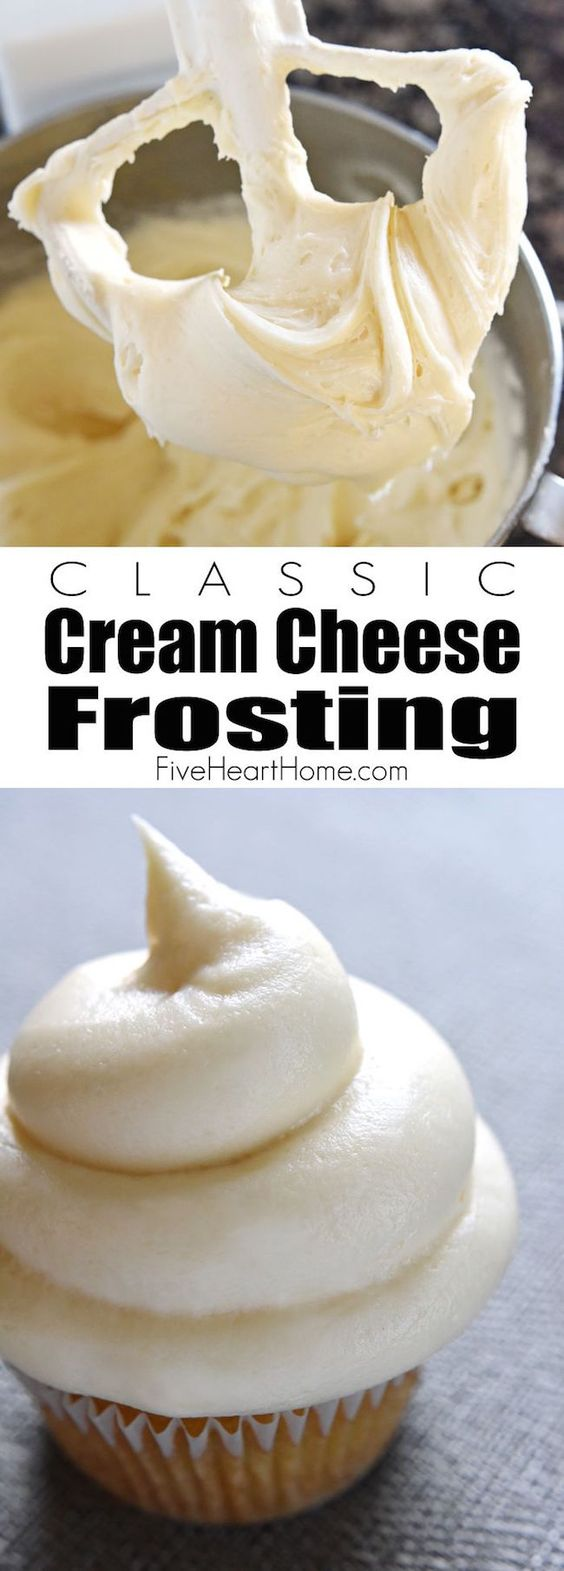 cream cheese frosting best frosting recipe cheese postres homemade ...